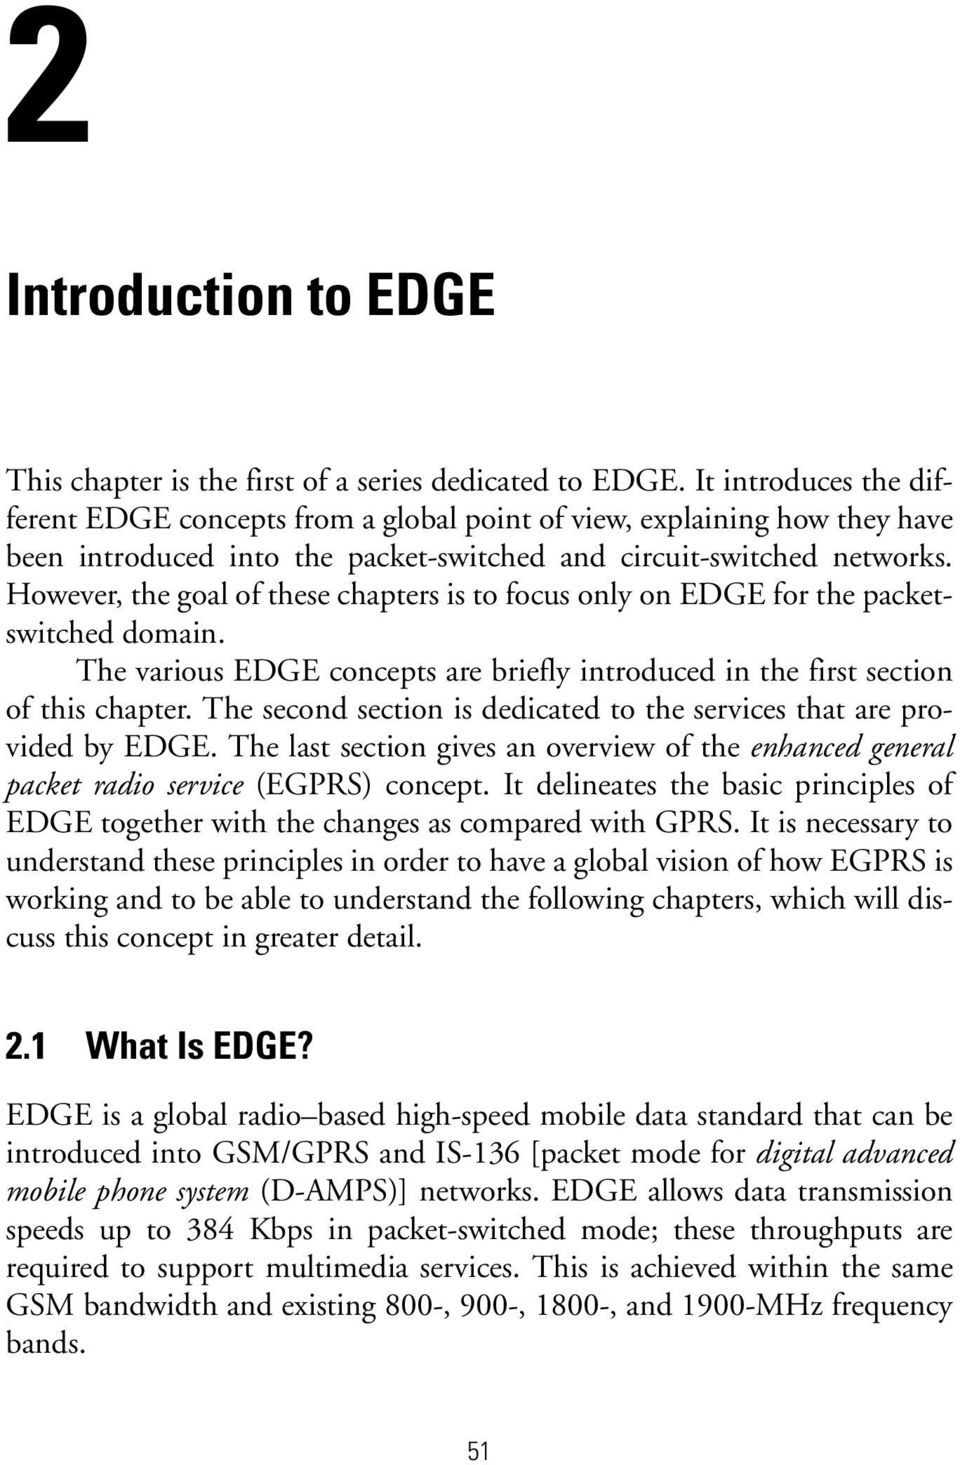 However, the goal of these chapters is to focus only on EDGE for the packetswitched domain. The various EDGE concepts are briefly introduced in the first section of this chapter.